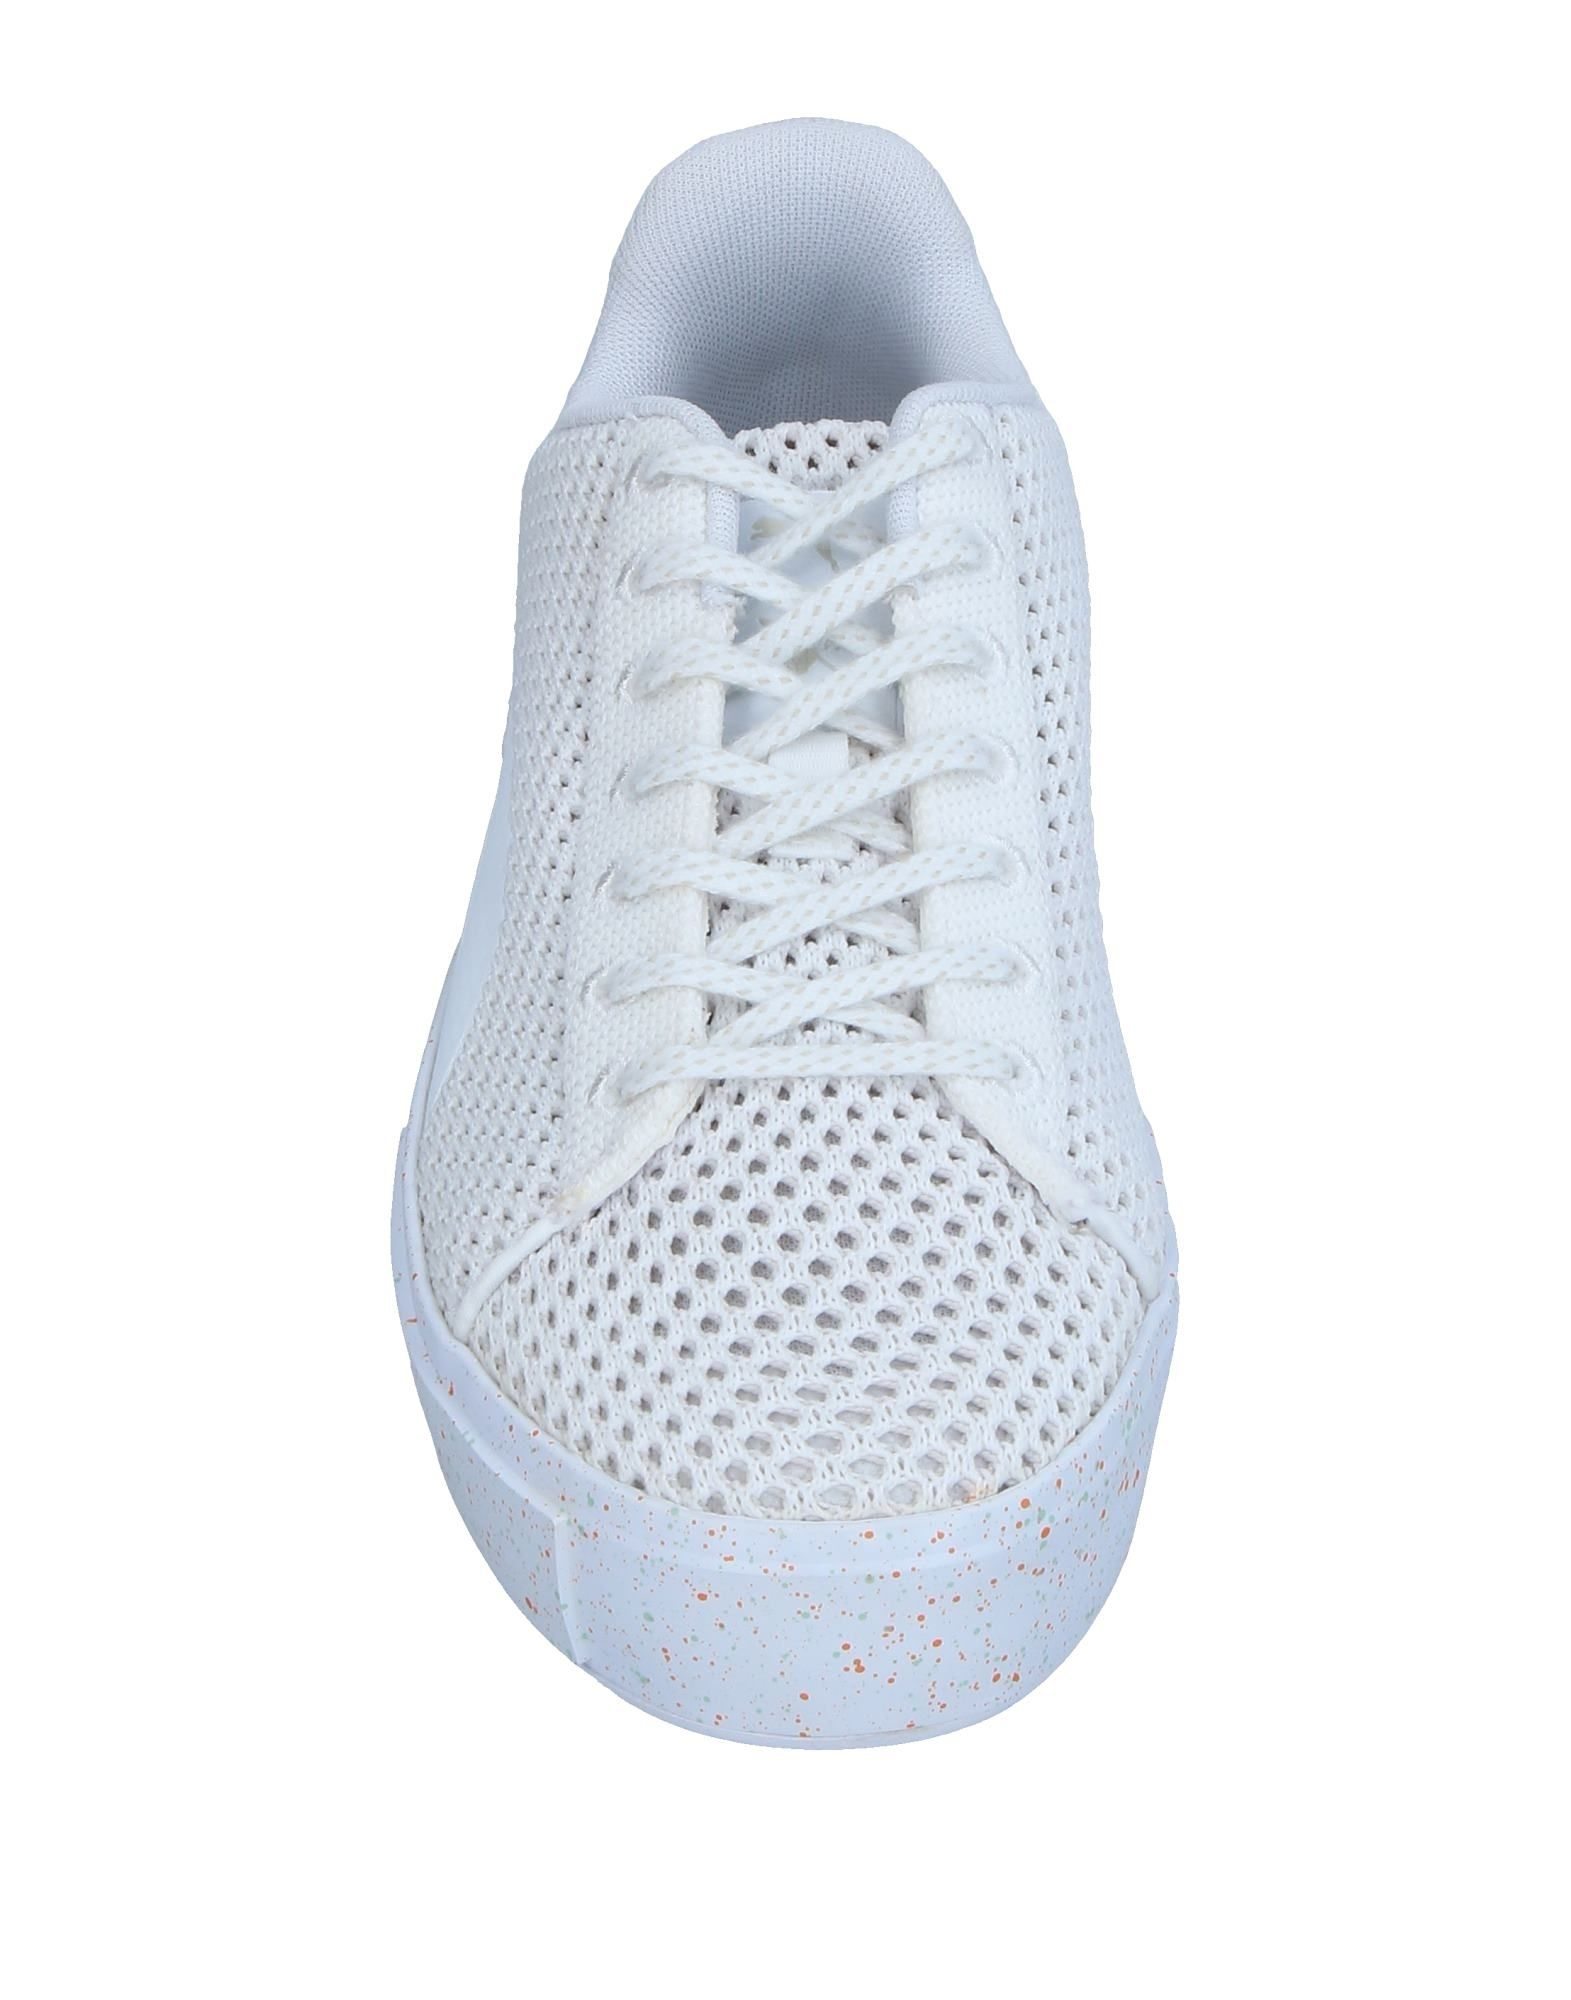 Sneakers Puma X Daily Paper Femme - Sneakers Puma X Daily Paper sur